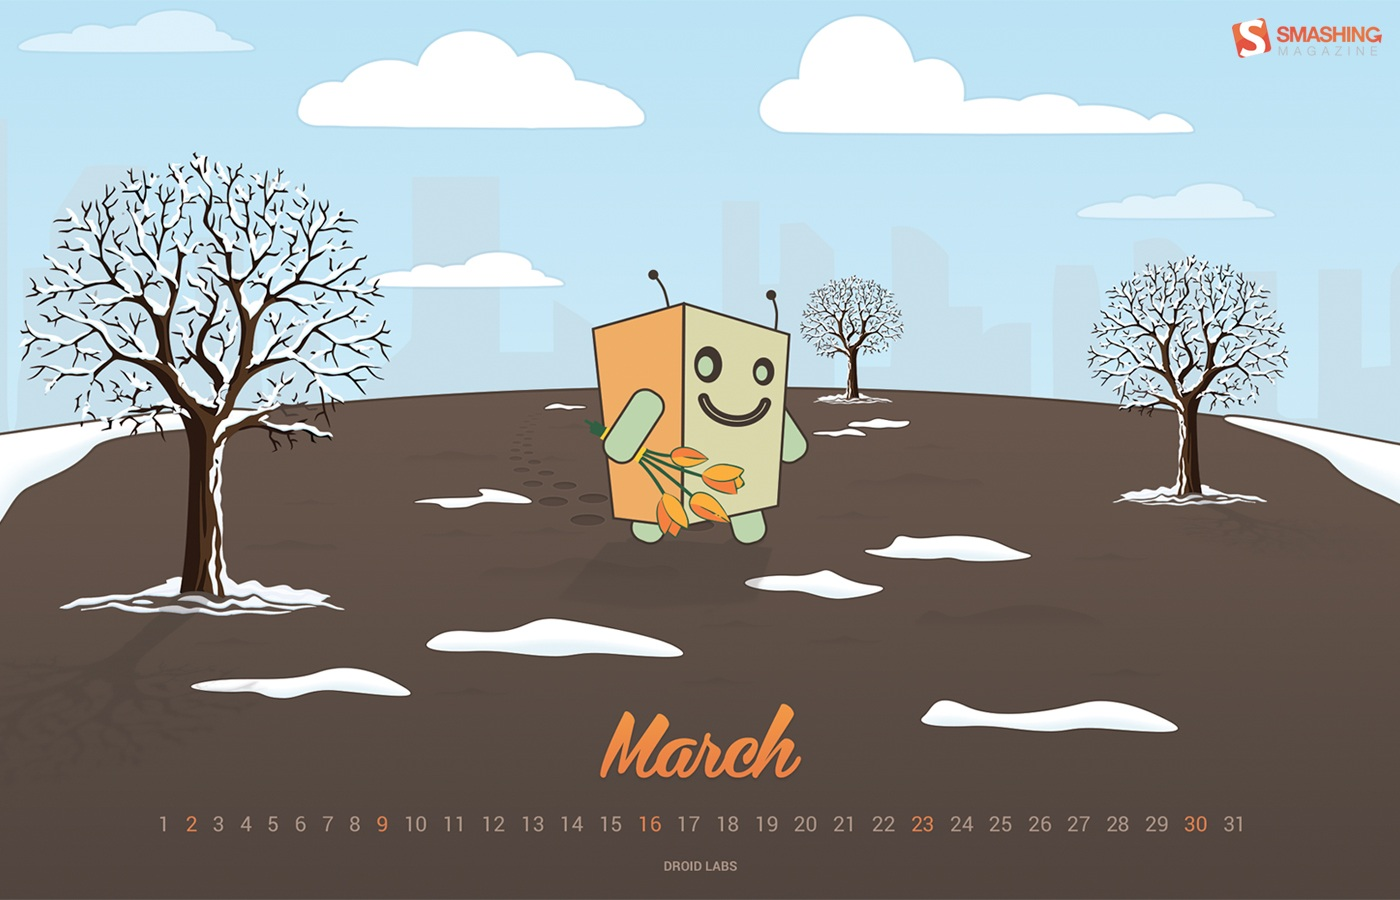 In January Calendar Wallpaper 50081